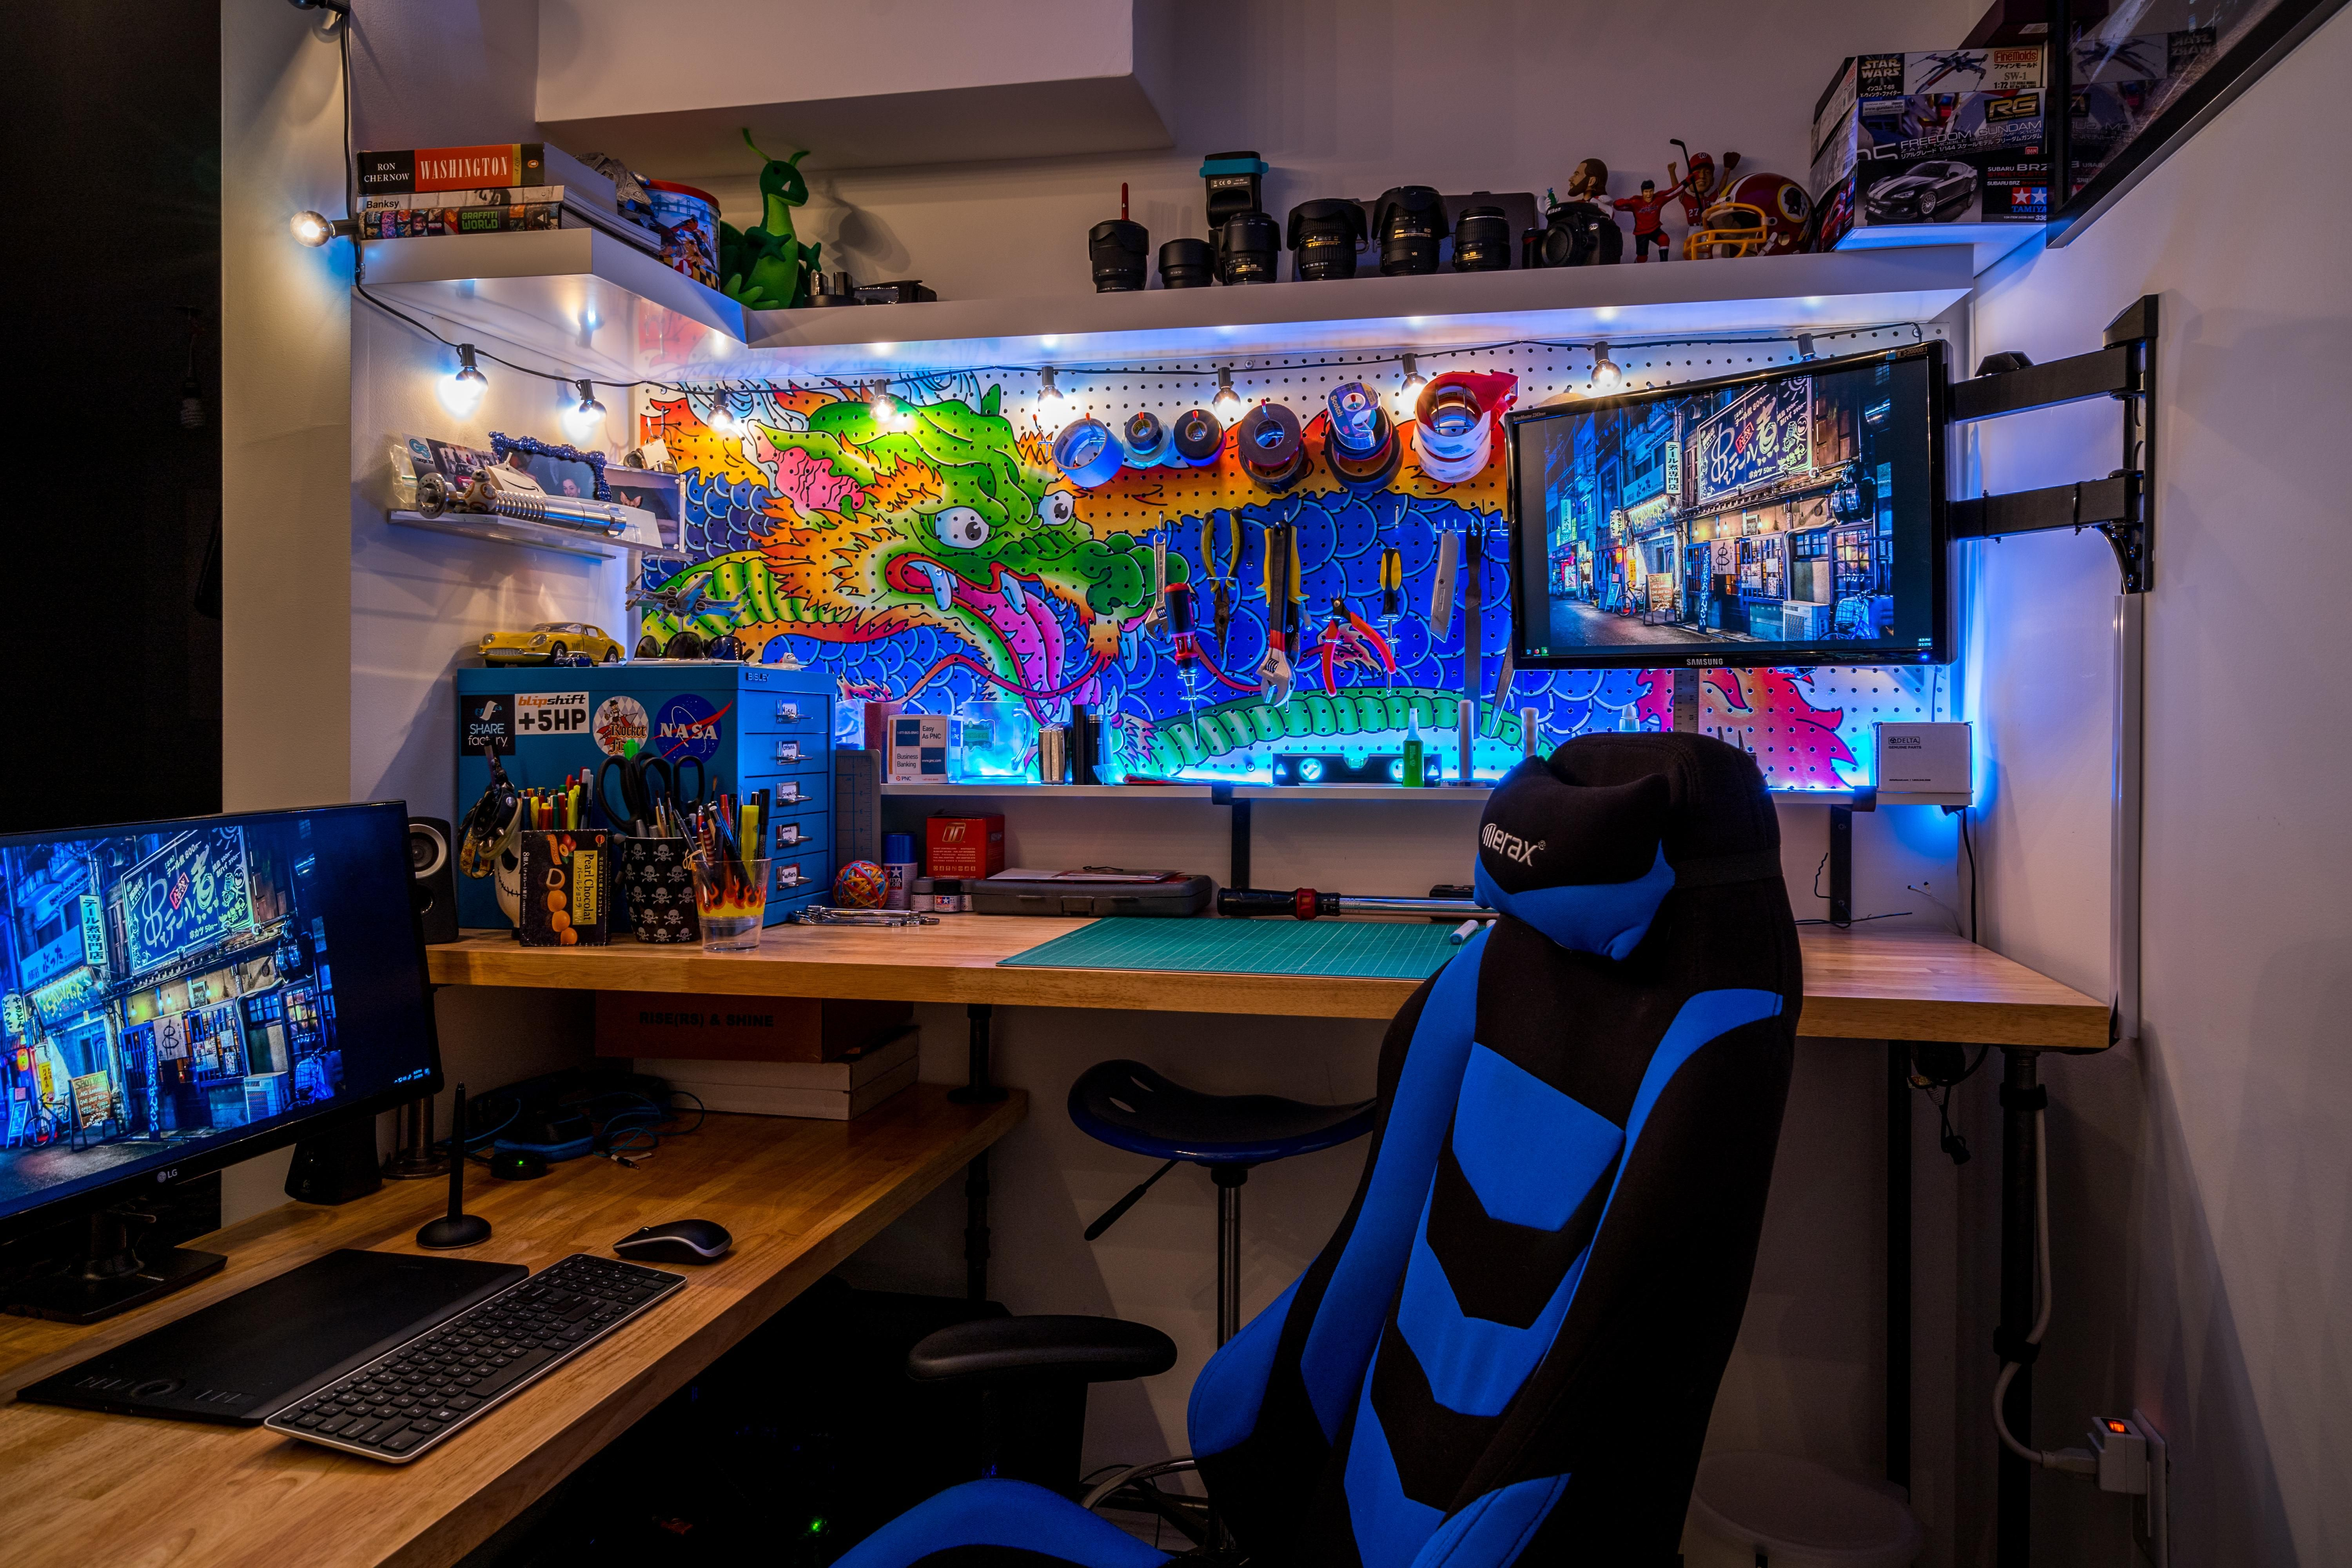 Pin by jonny on Wohnideen | Pinterest | Finals, Gaming setup and ...